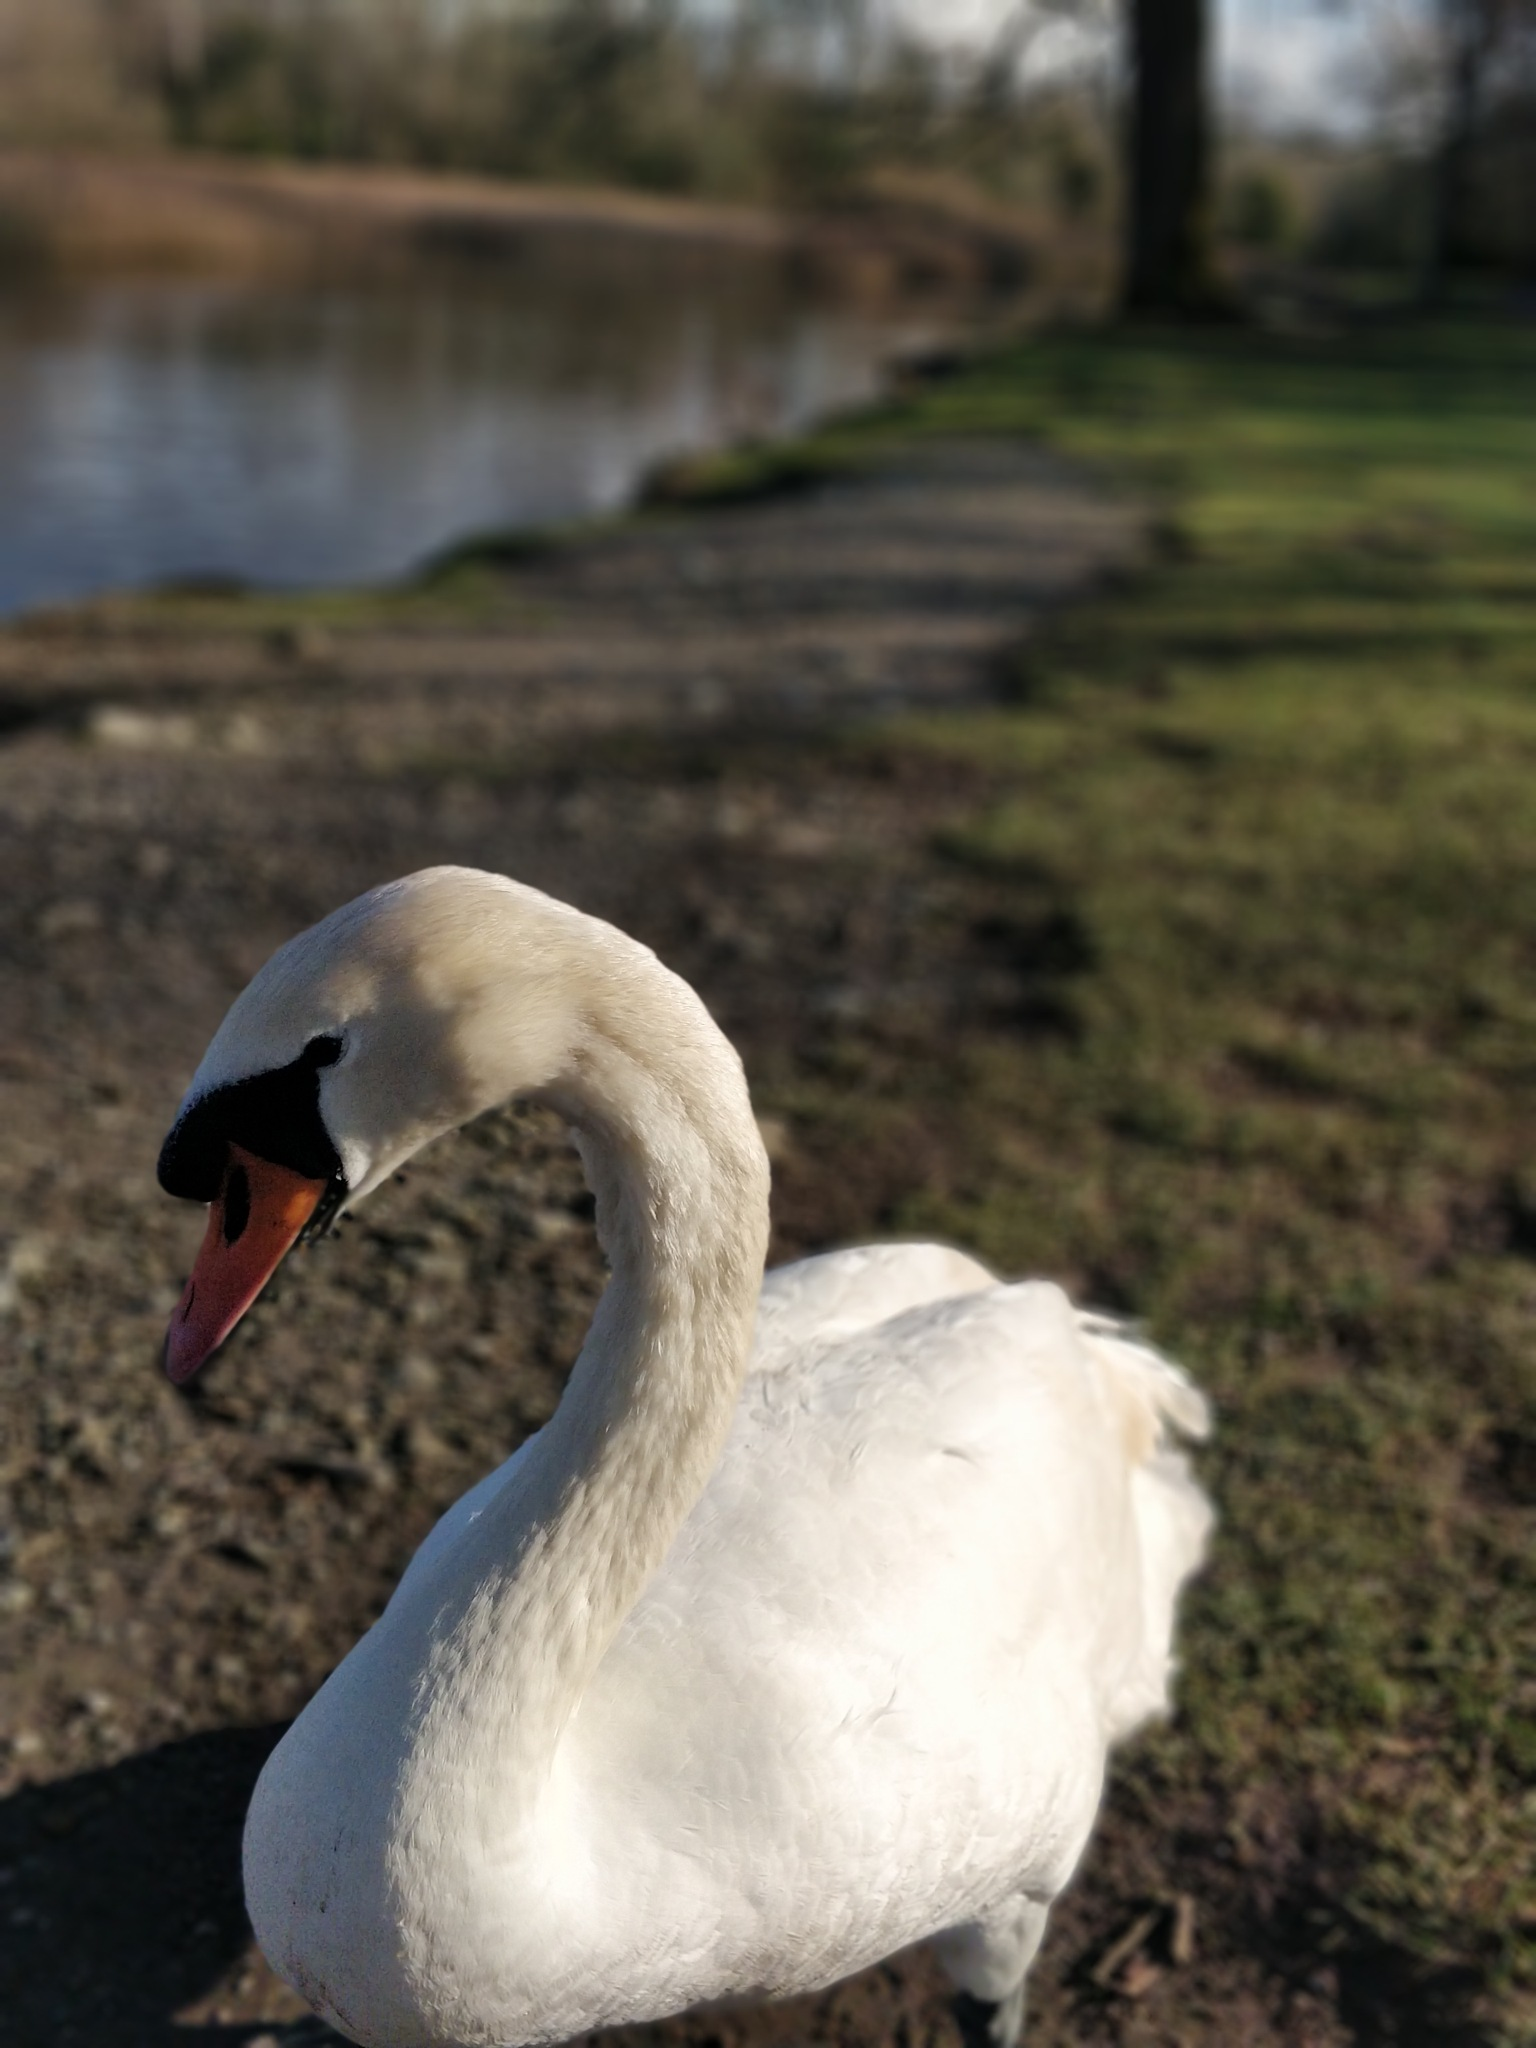 Swan at Emo House Lake by Noel Connolly